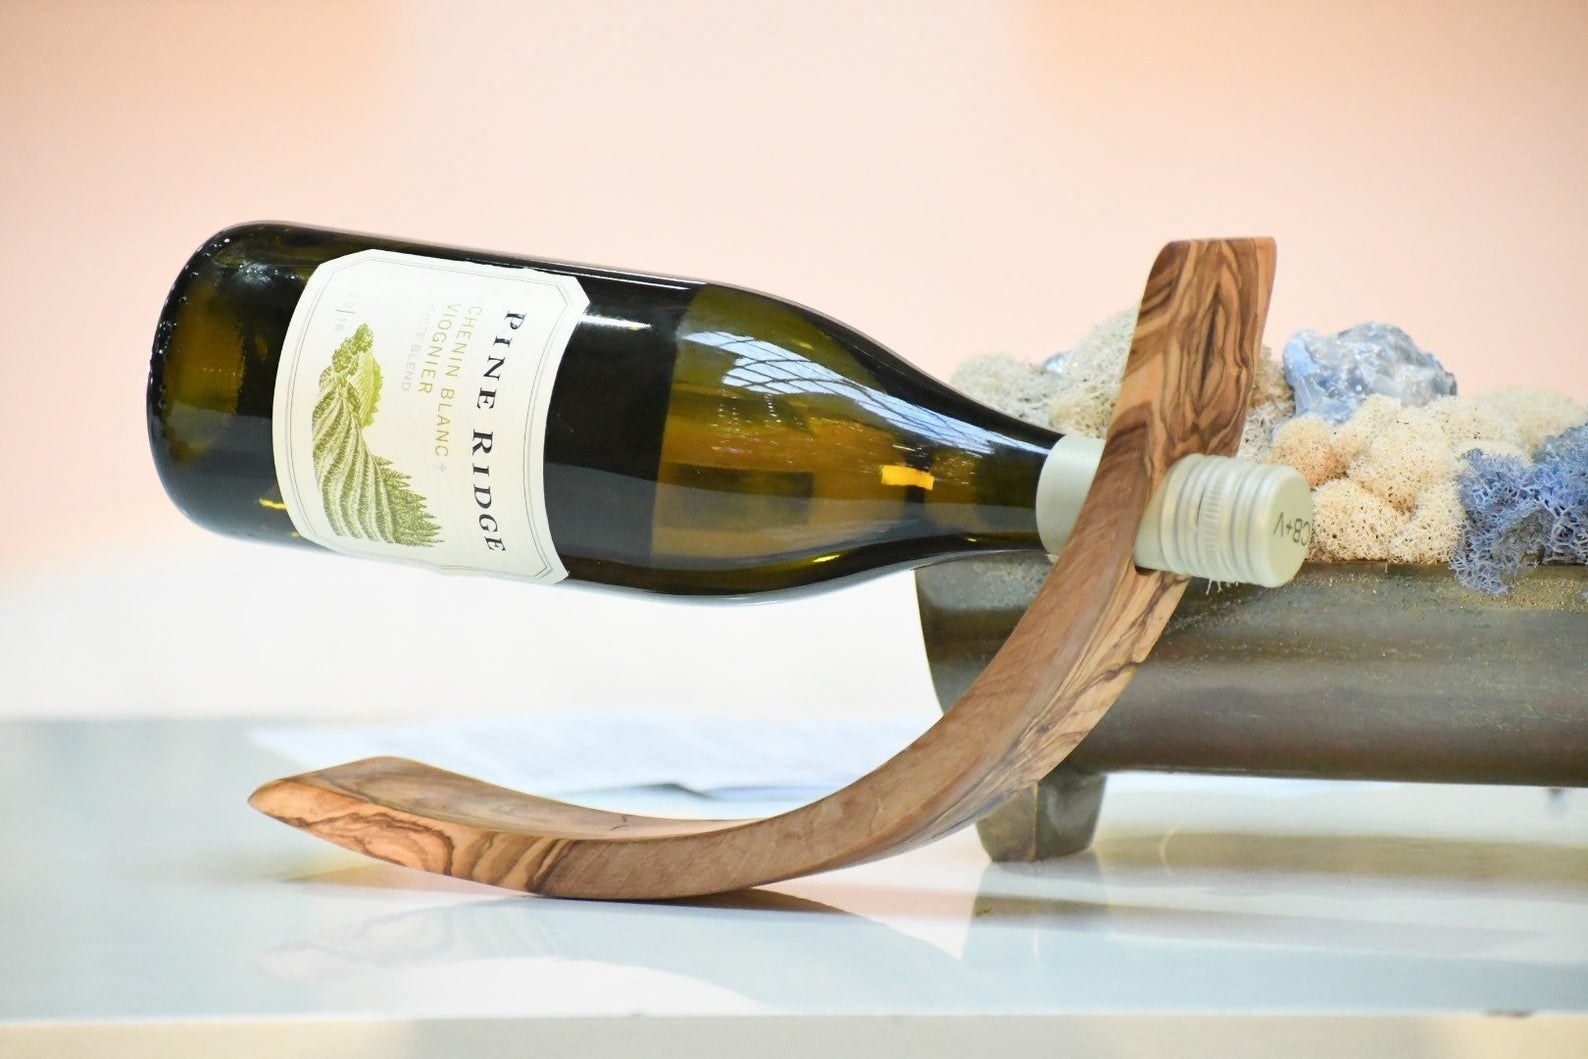 Wood curved stick with a hole in the top with a wine bottle being held up in the air